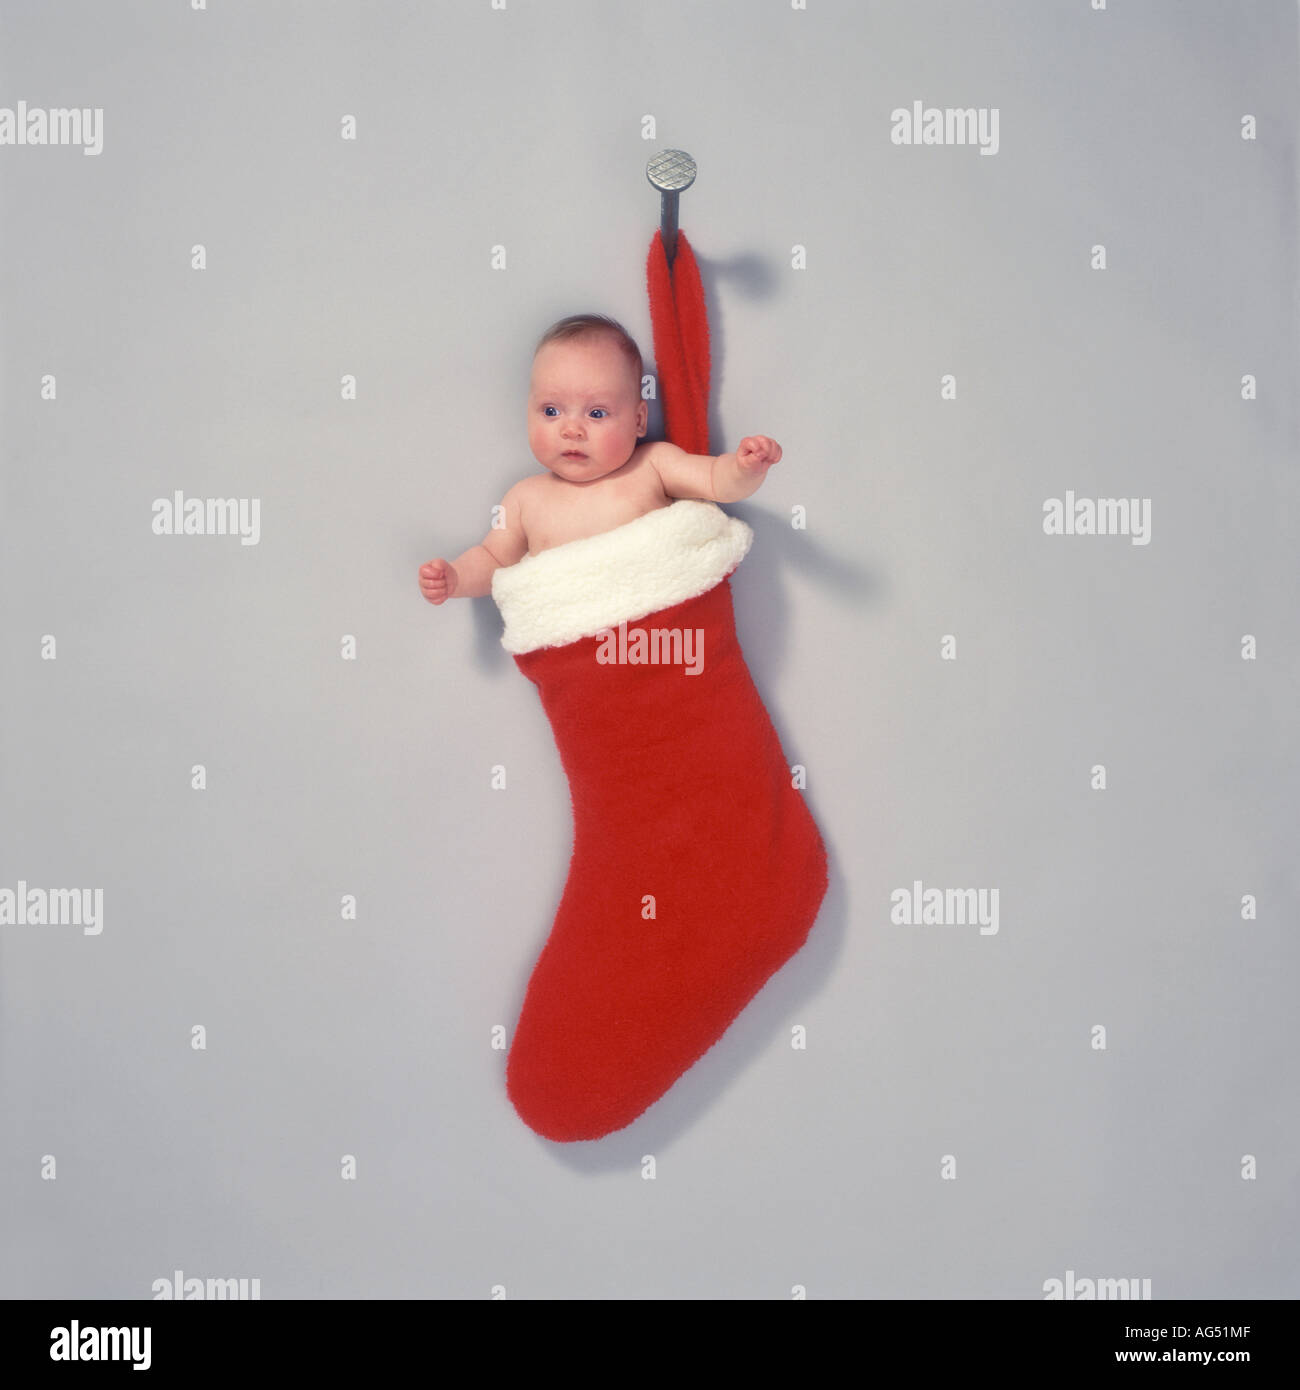 Baby in a hanging Christmas sock - Stock Image